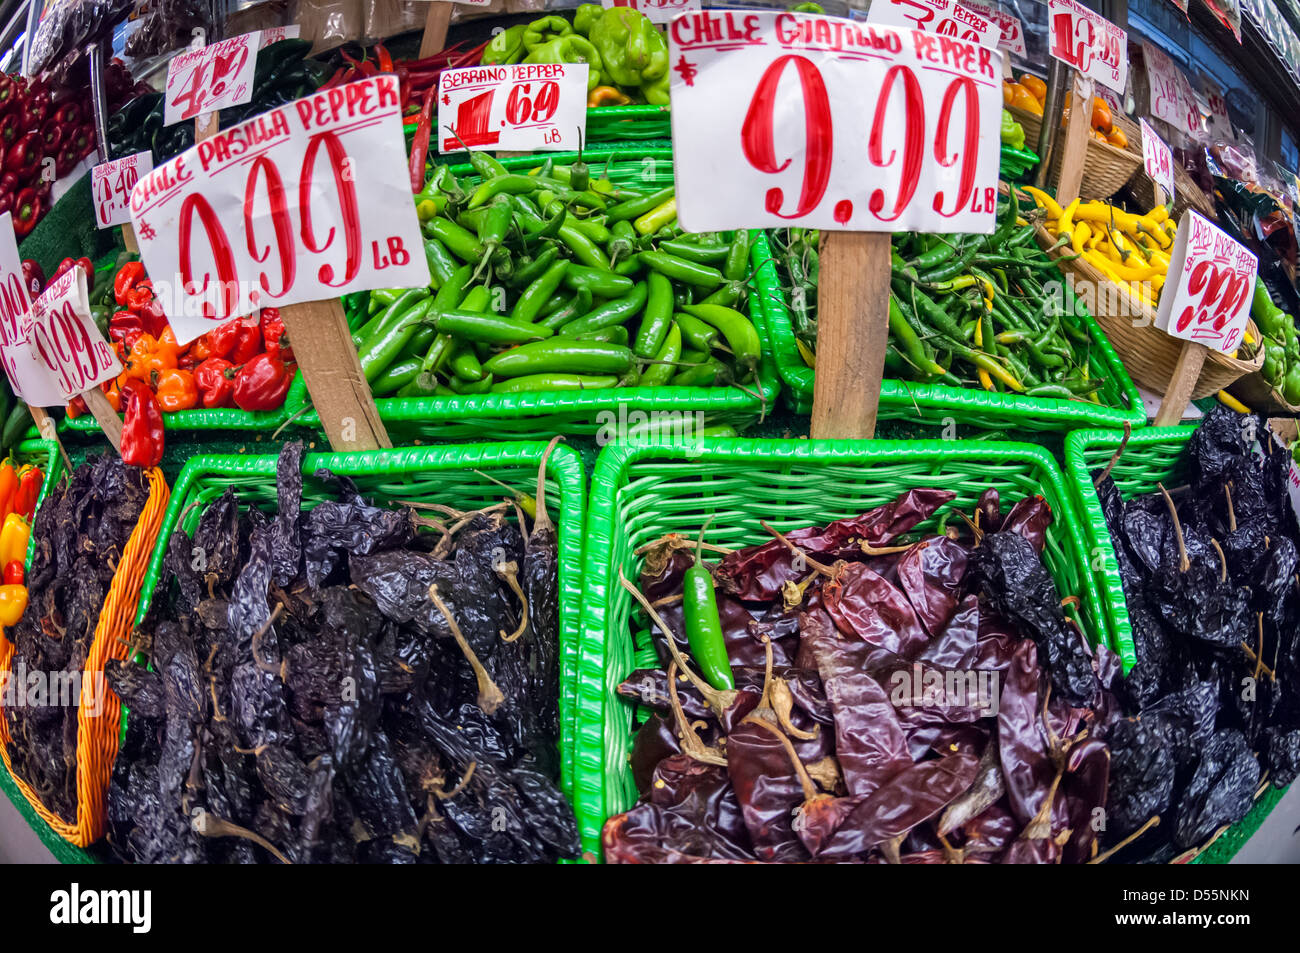 groceries grocery chile chili stock photos groceries grocery chile